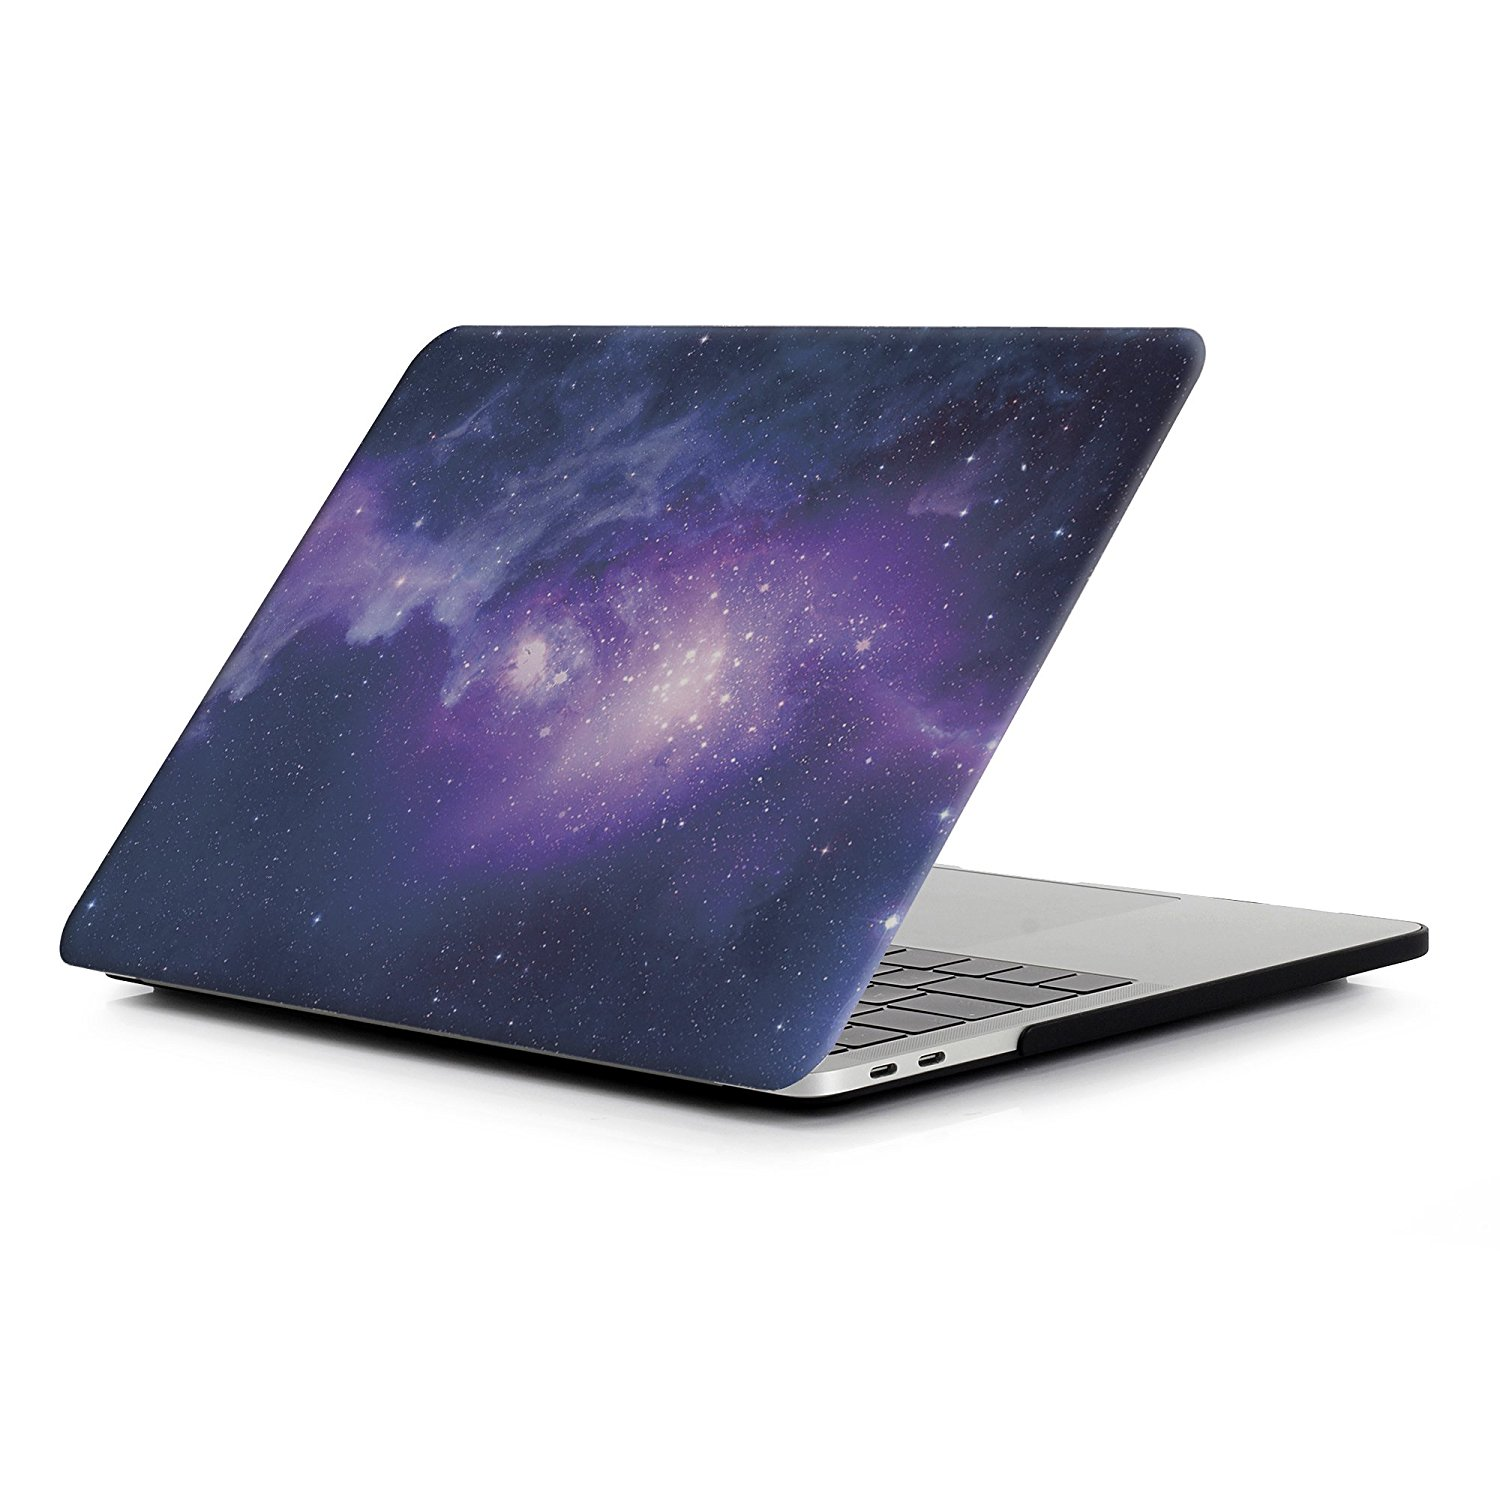 MacBook Pro 15 Case 2016, Halnziye Smooth Soft-Touch Plastic Hard Cover Shell for Newest MacBook Pro 15 inch with Retina Display (Model A1707 with/without Touch Bar and Touch ID) - Purple Space